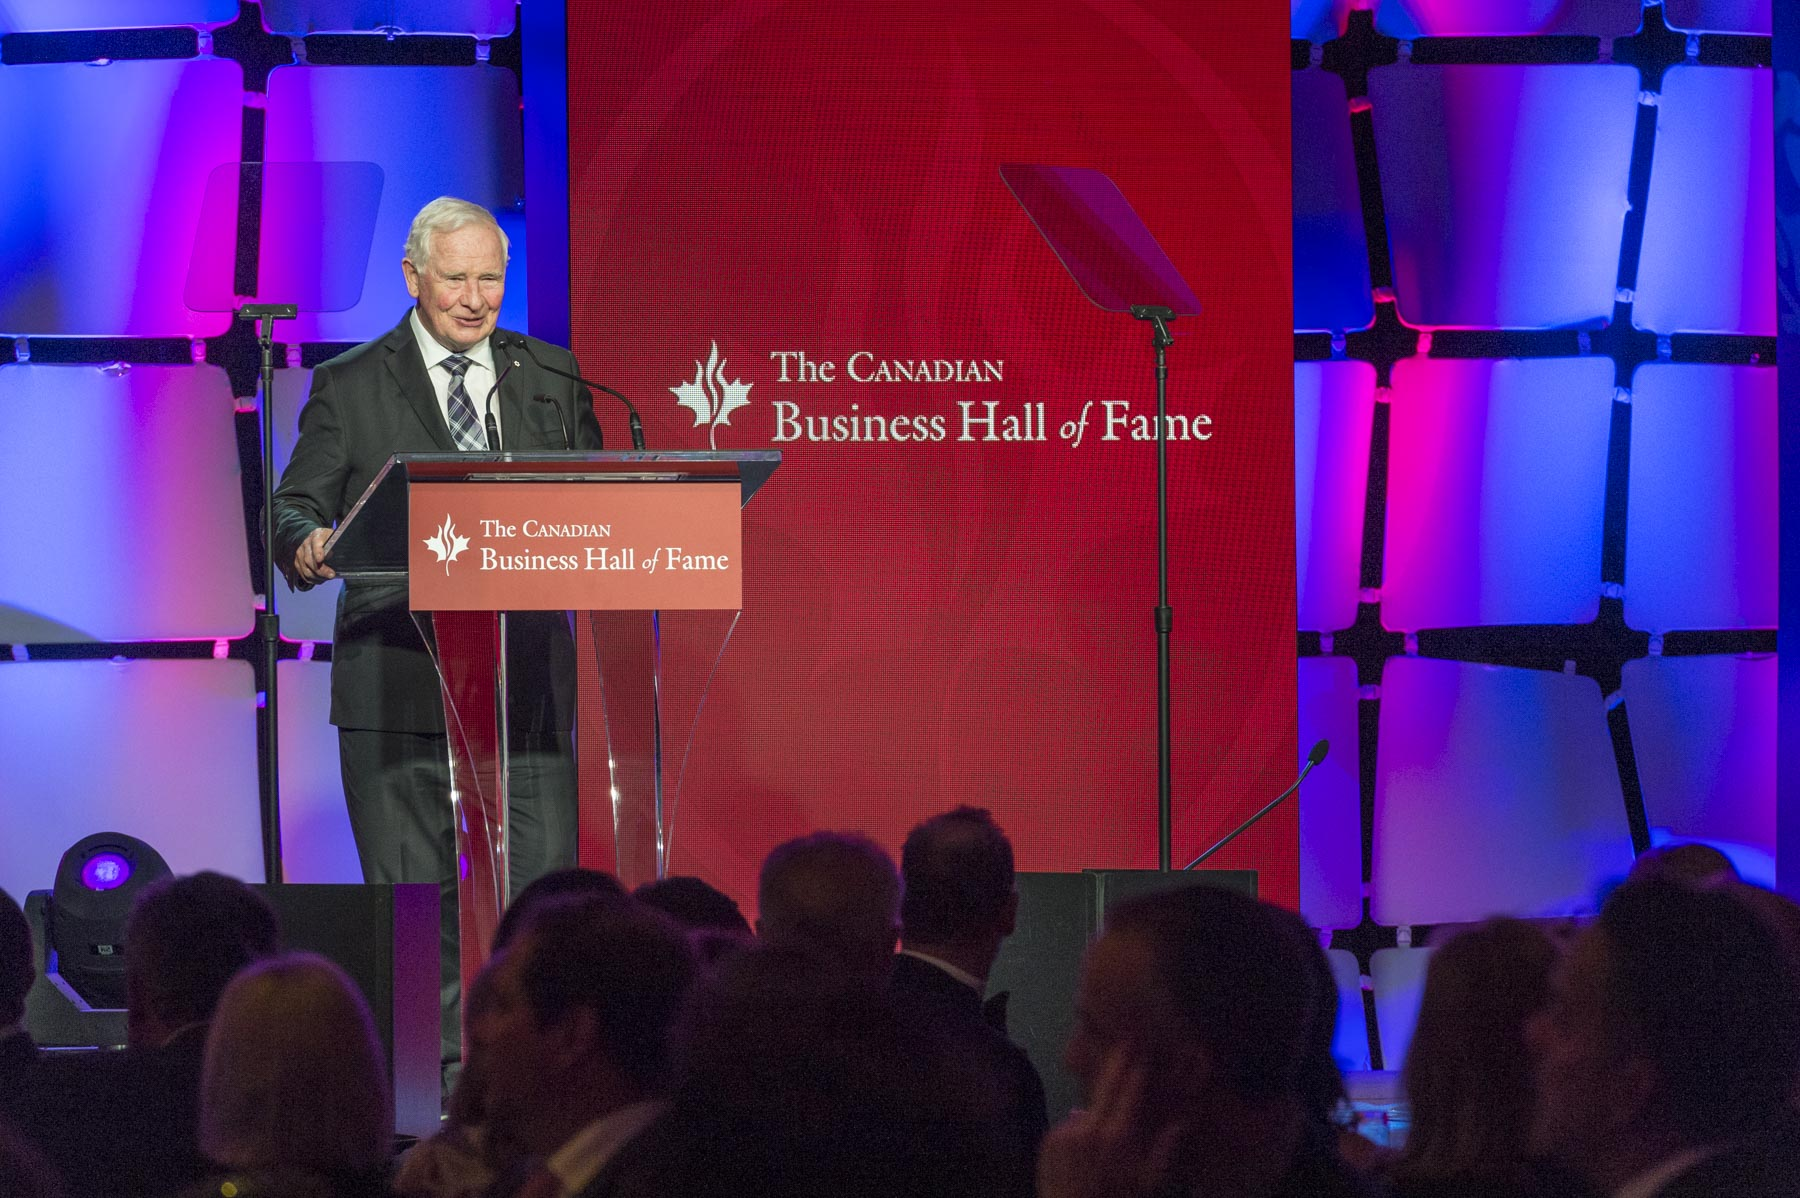 """It's a pleasure to be here to celebrate the inductees into the Canadian Business Hall of Fame. Alain Bouchard, Tom Jenkins, Clay Riddell and Nancy Southern have made such powerful and significant impacts on the Canadian economy. Their ideas and actions have shaped our success at home and on the international stage,"" said the Governor General."